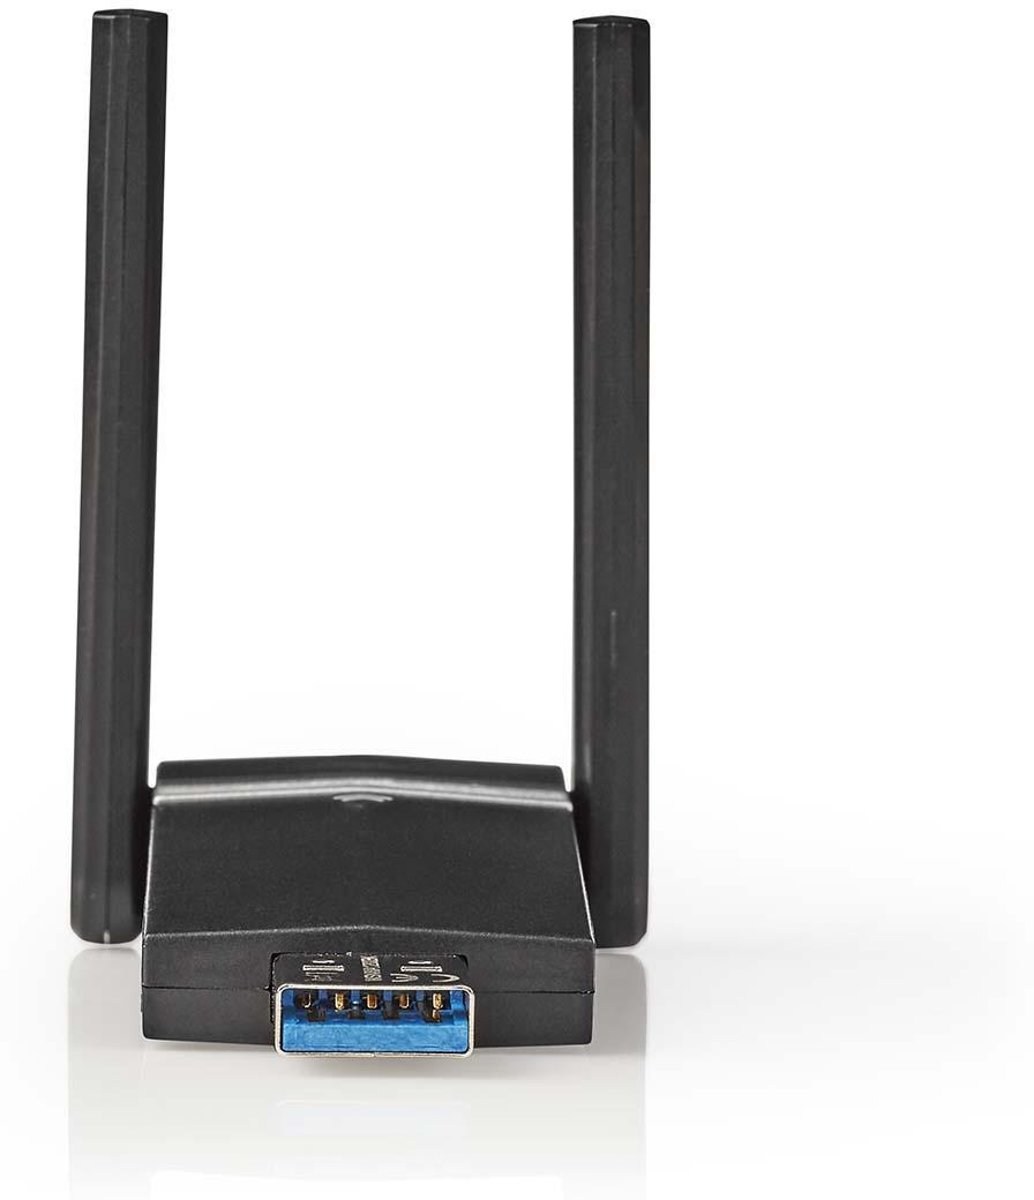 Network Dongle | AC1200 | Dual Band | Black